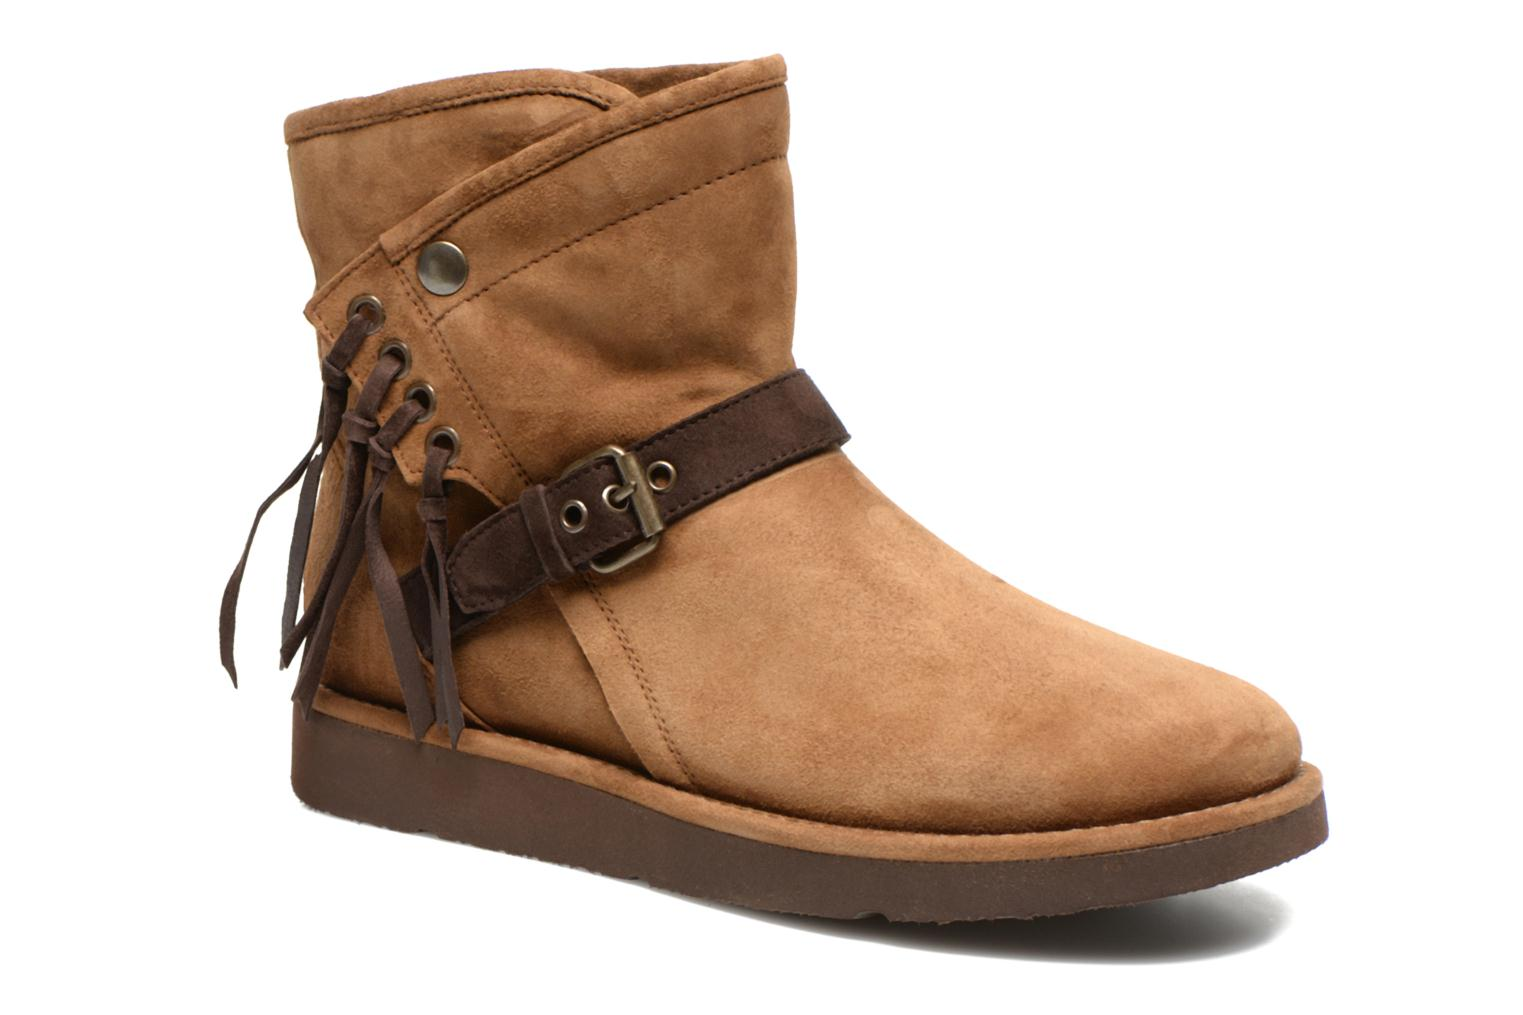 Ugg Boots tragen – wikiHow